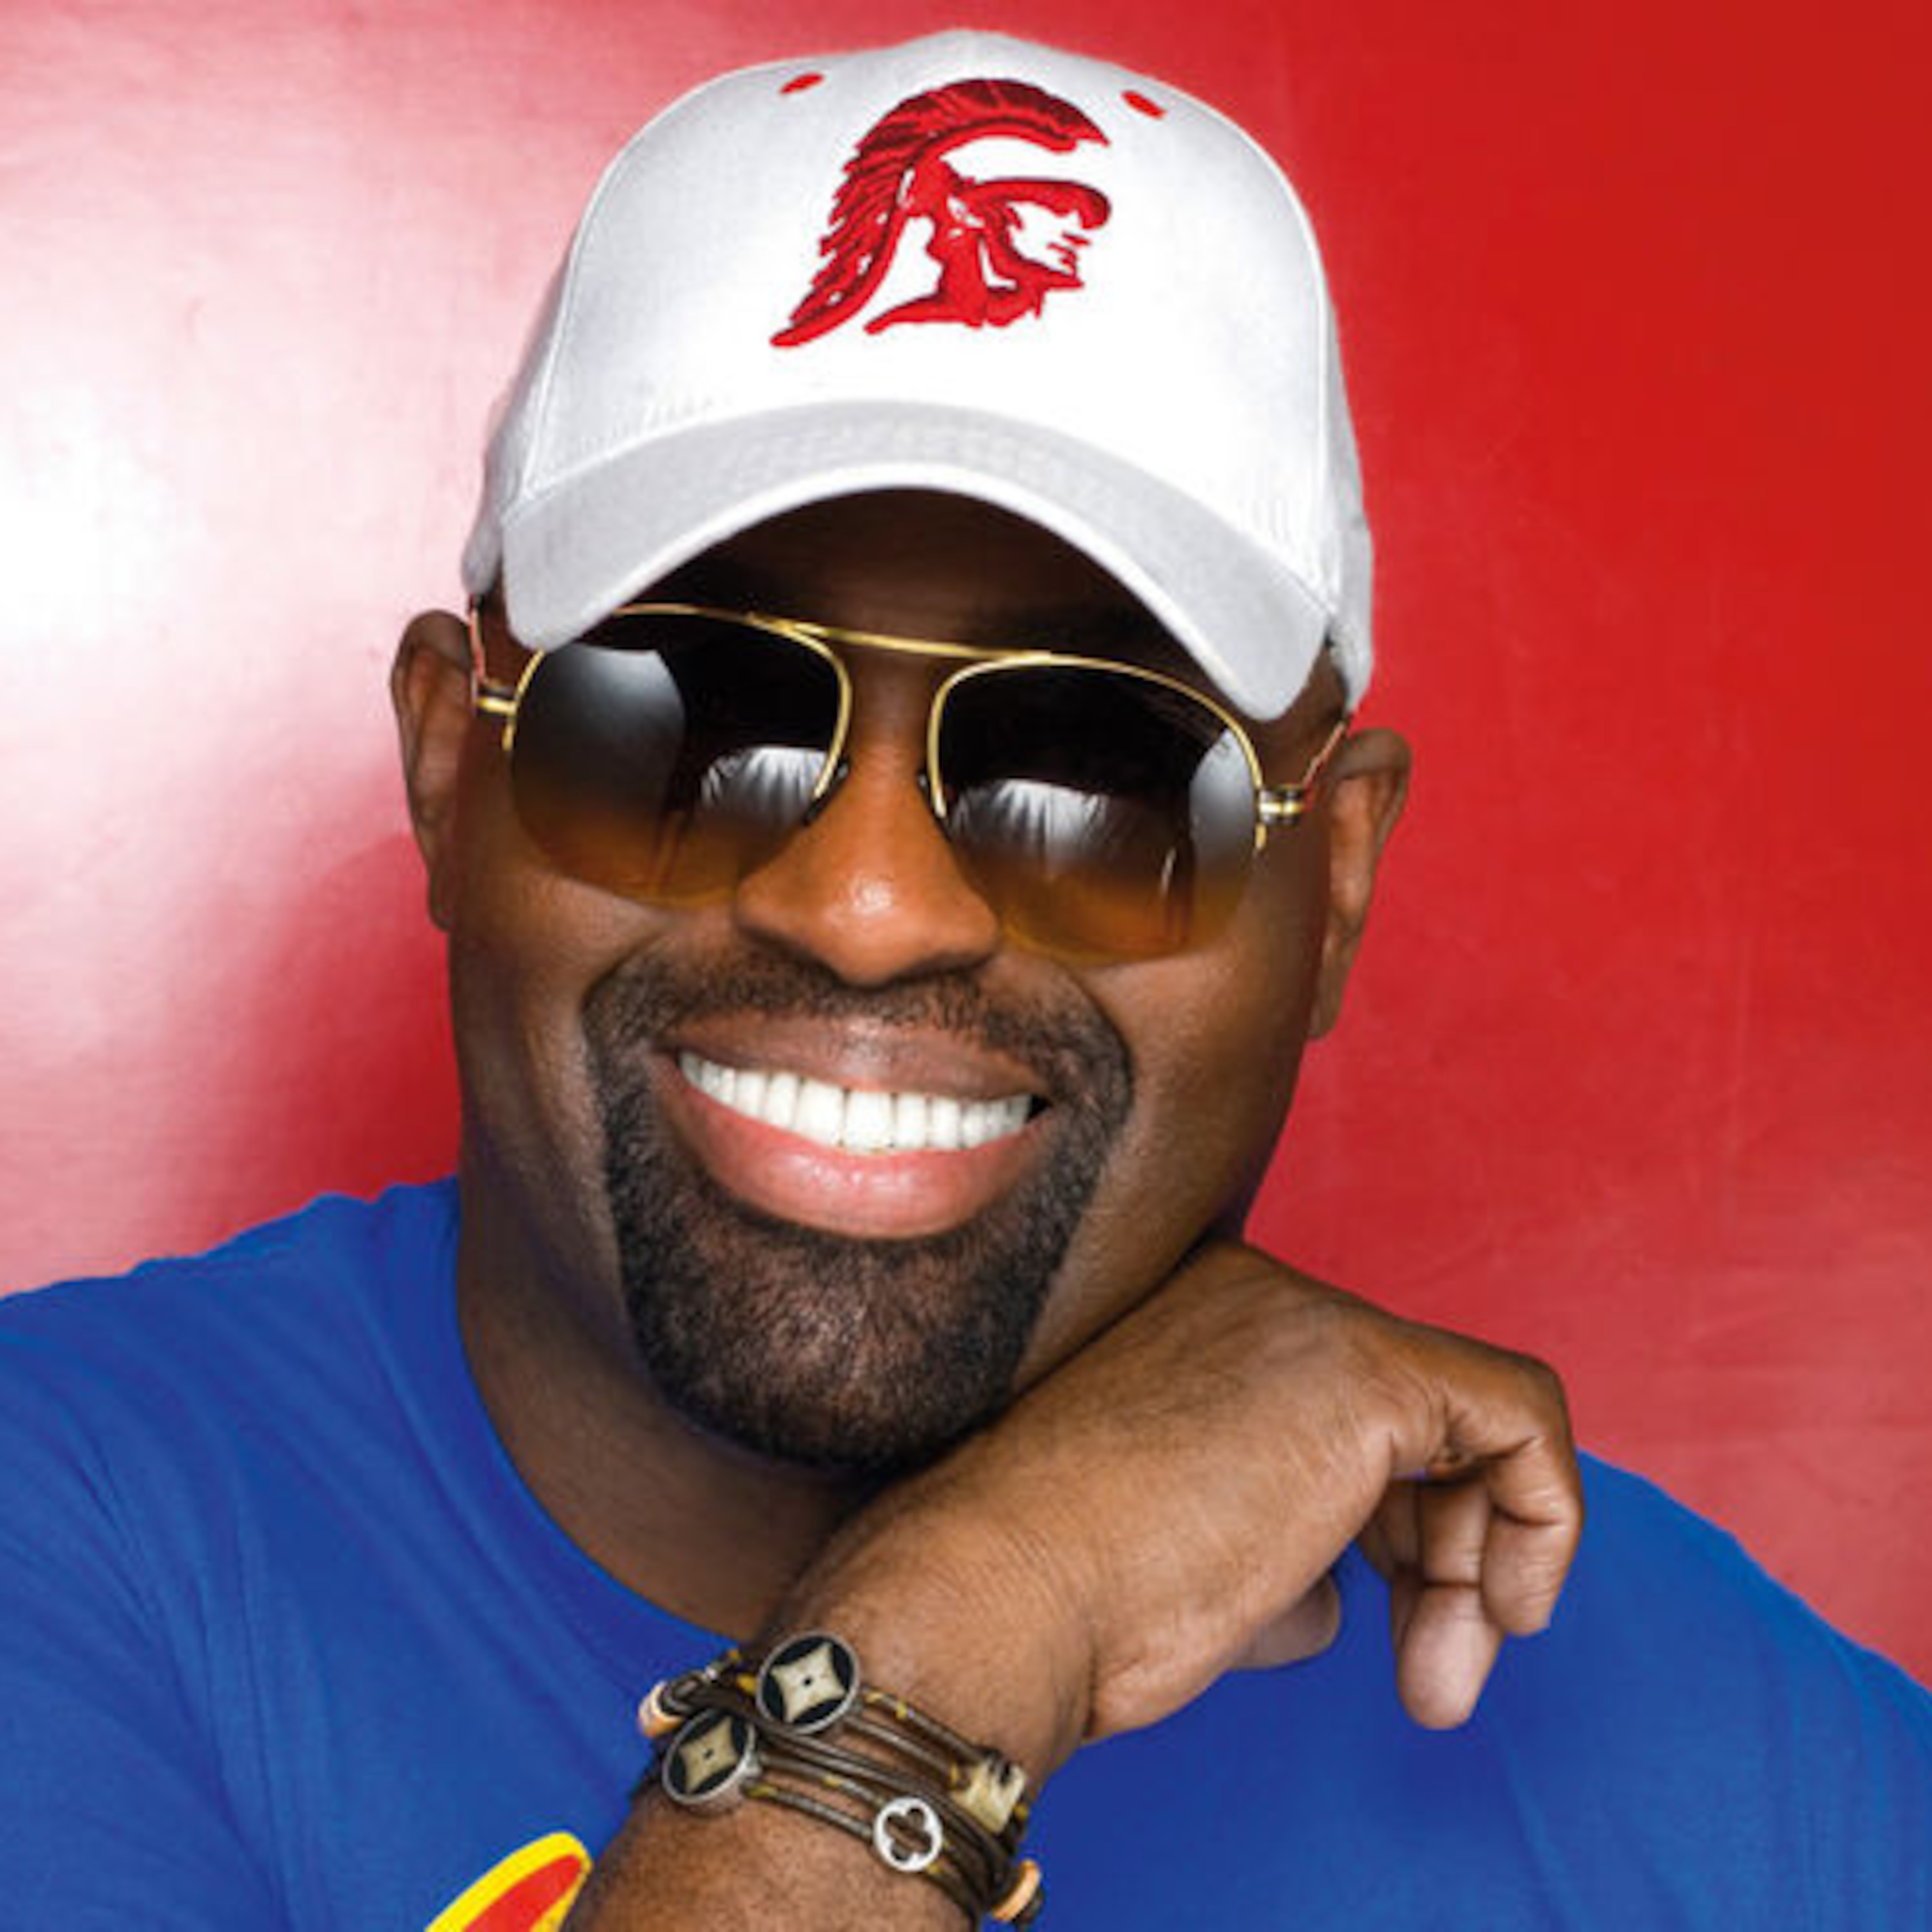 Geoffrey C - Special tribute to the Godfather of House, the Legendary Frankie Knuckles